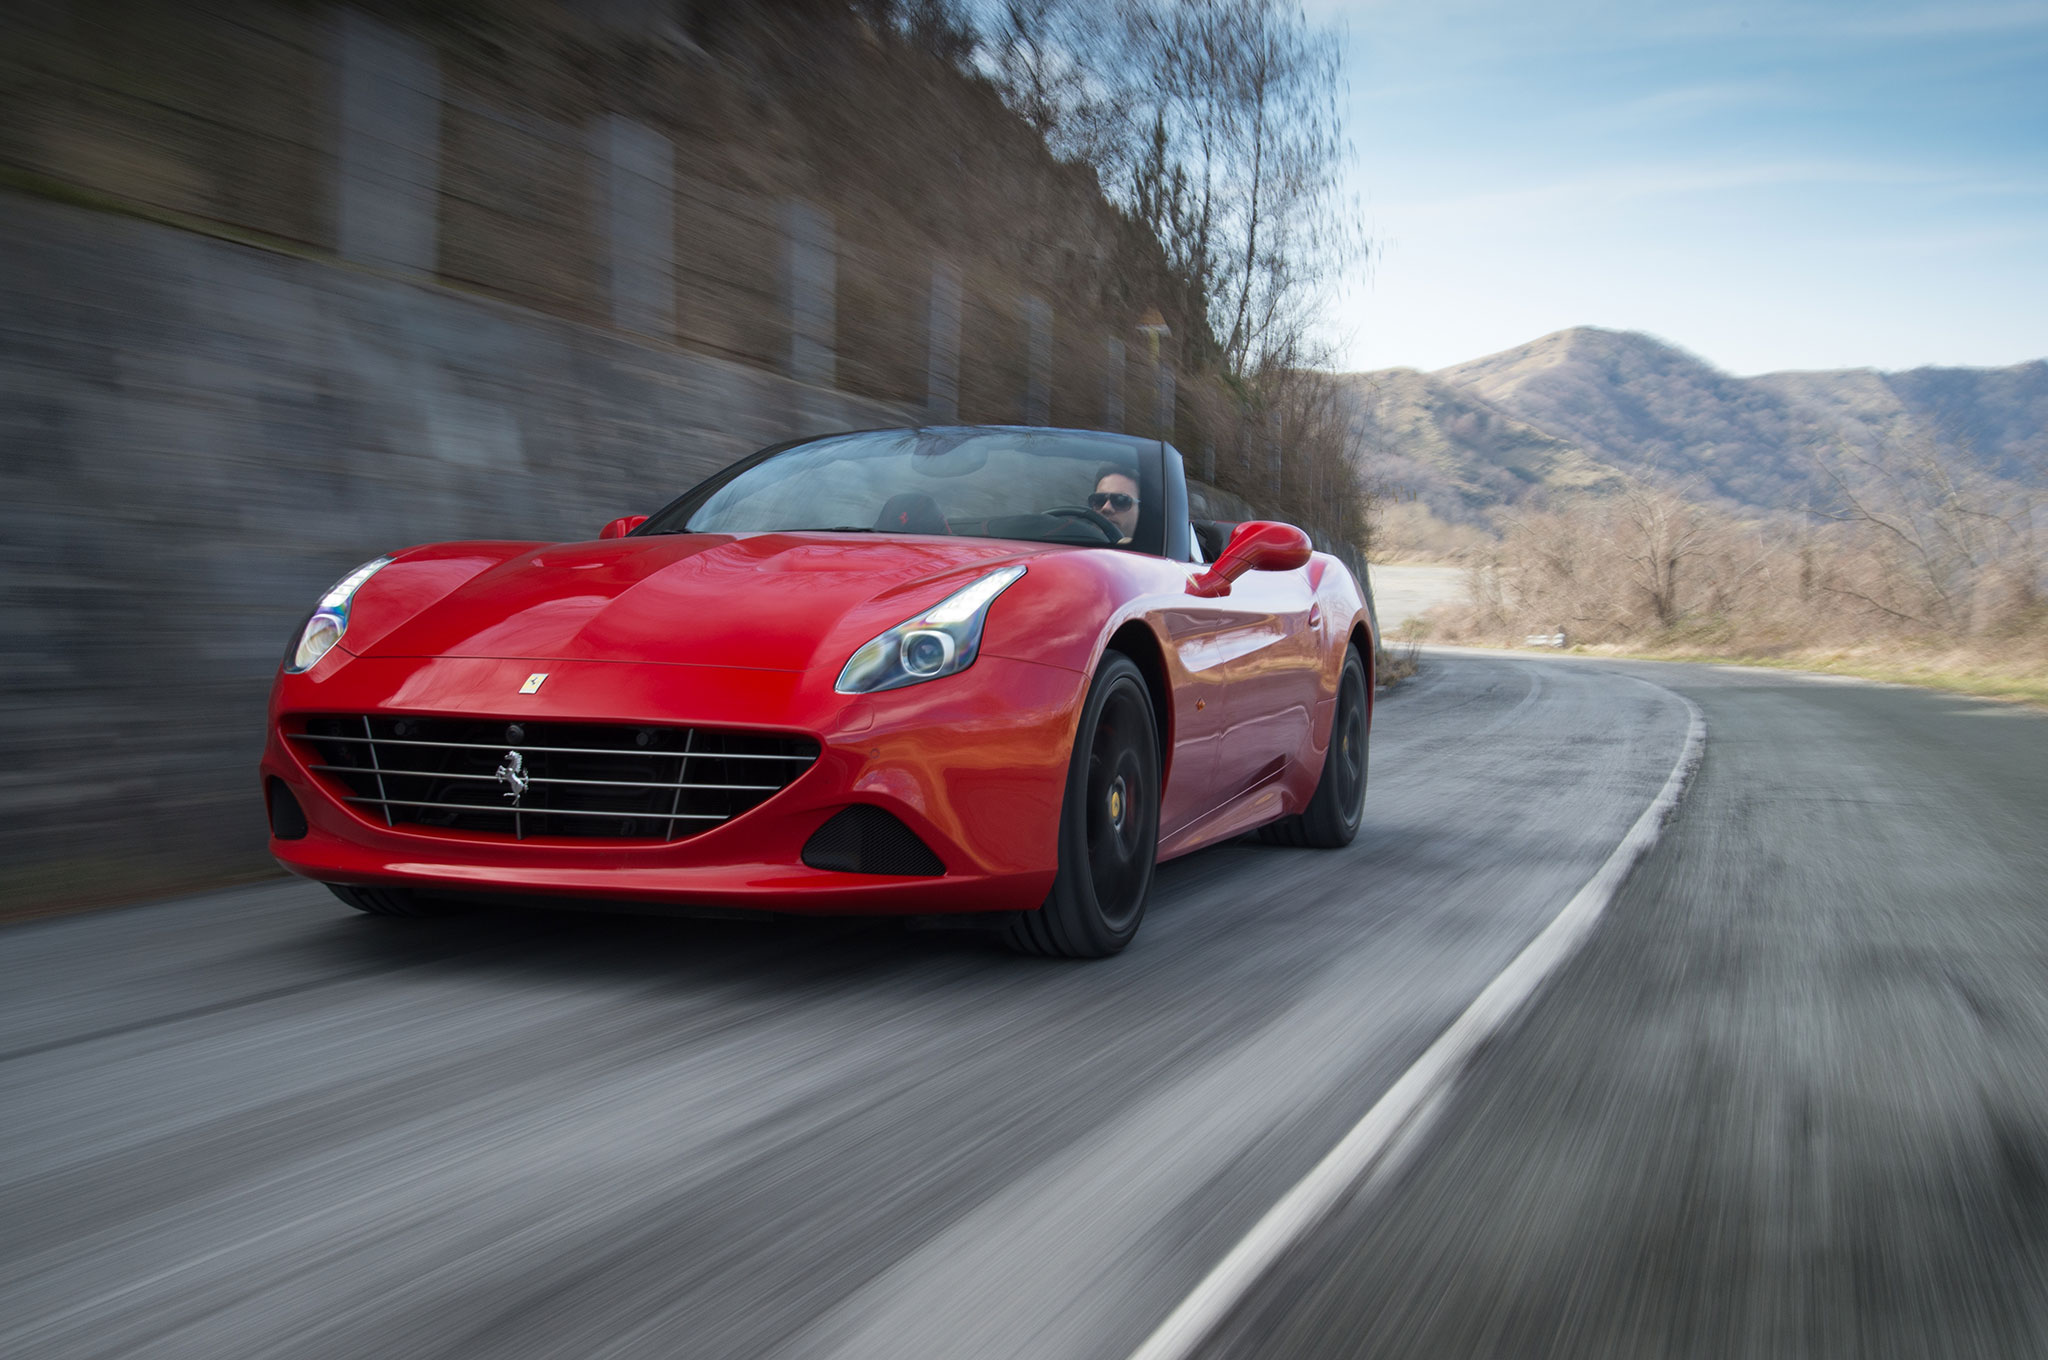 2016 ferrari california t handling speciale review. Black Bedroom Furniture Sets. Home Design Ideas